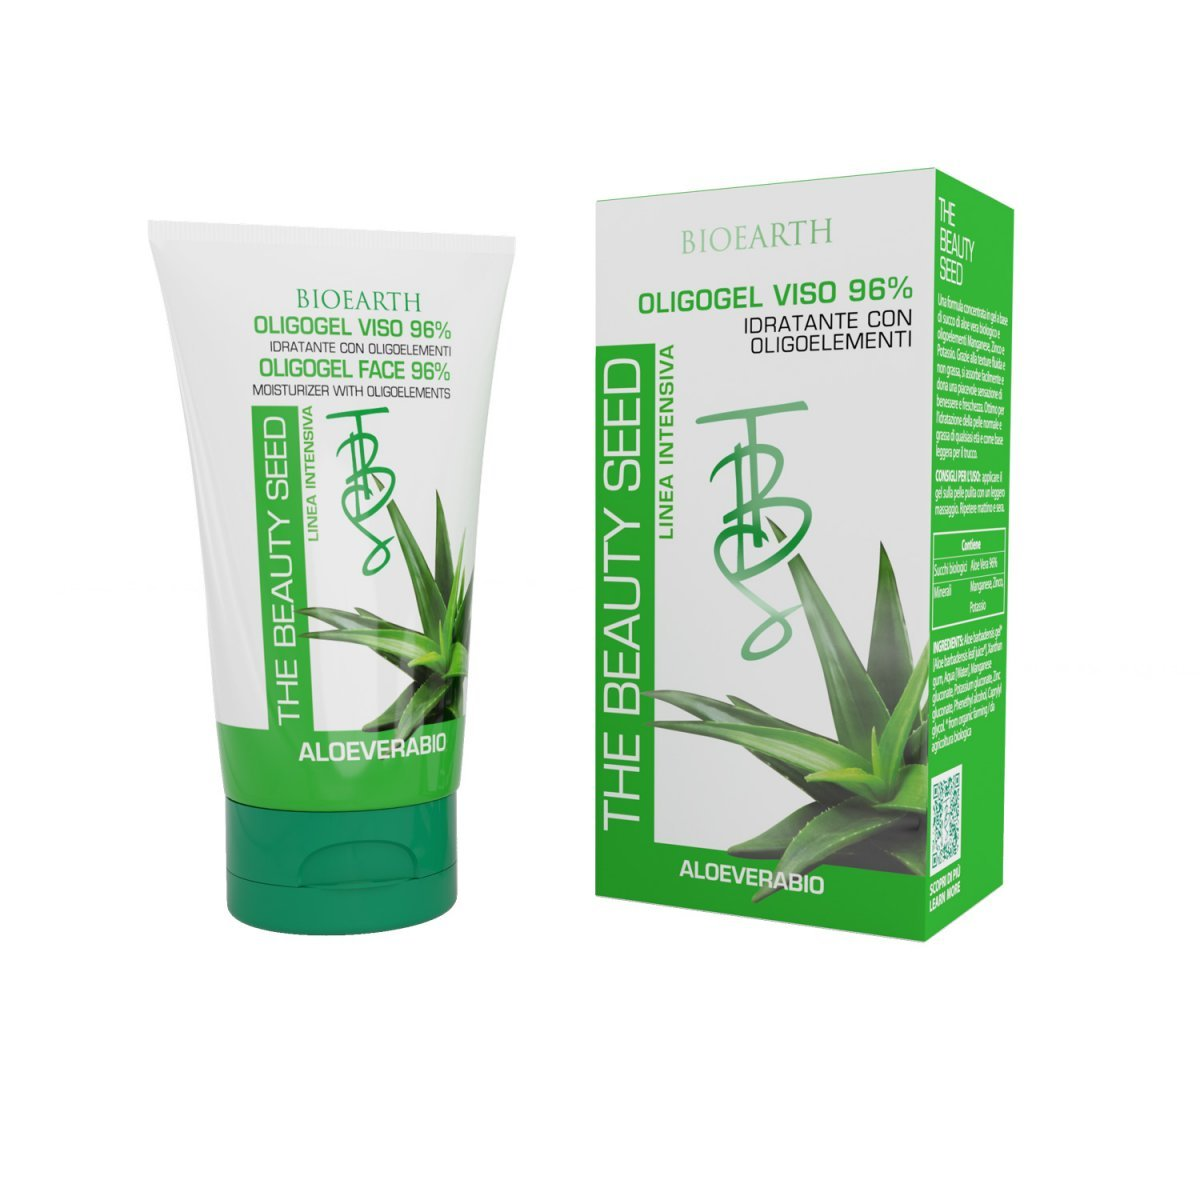 The Beauty Seed Oligo gel viso Aloe 96%